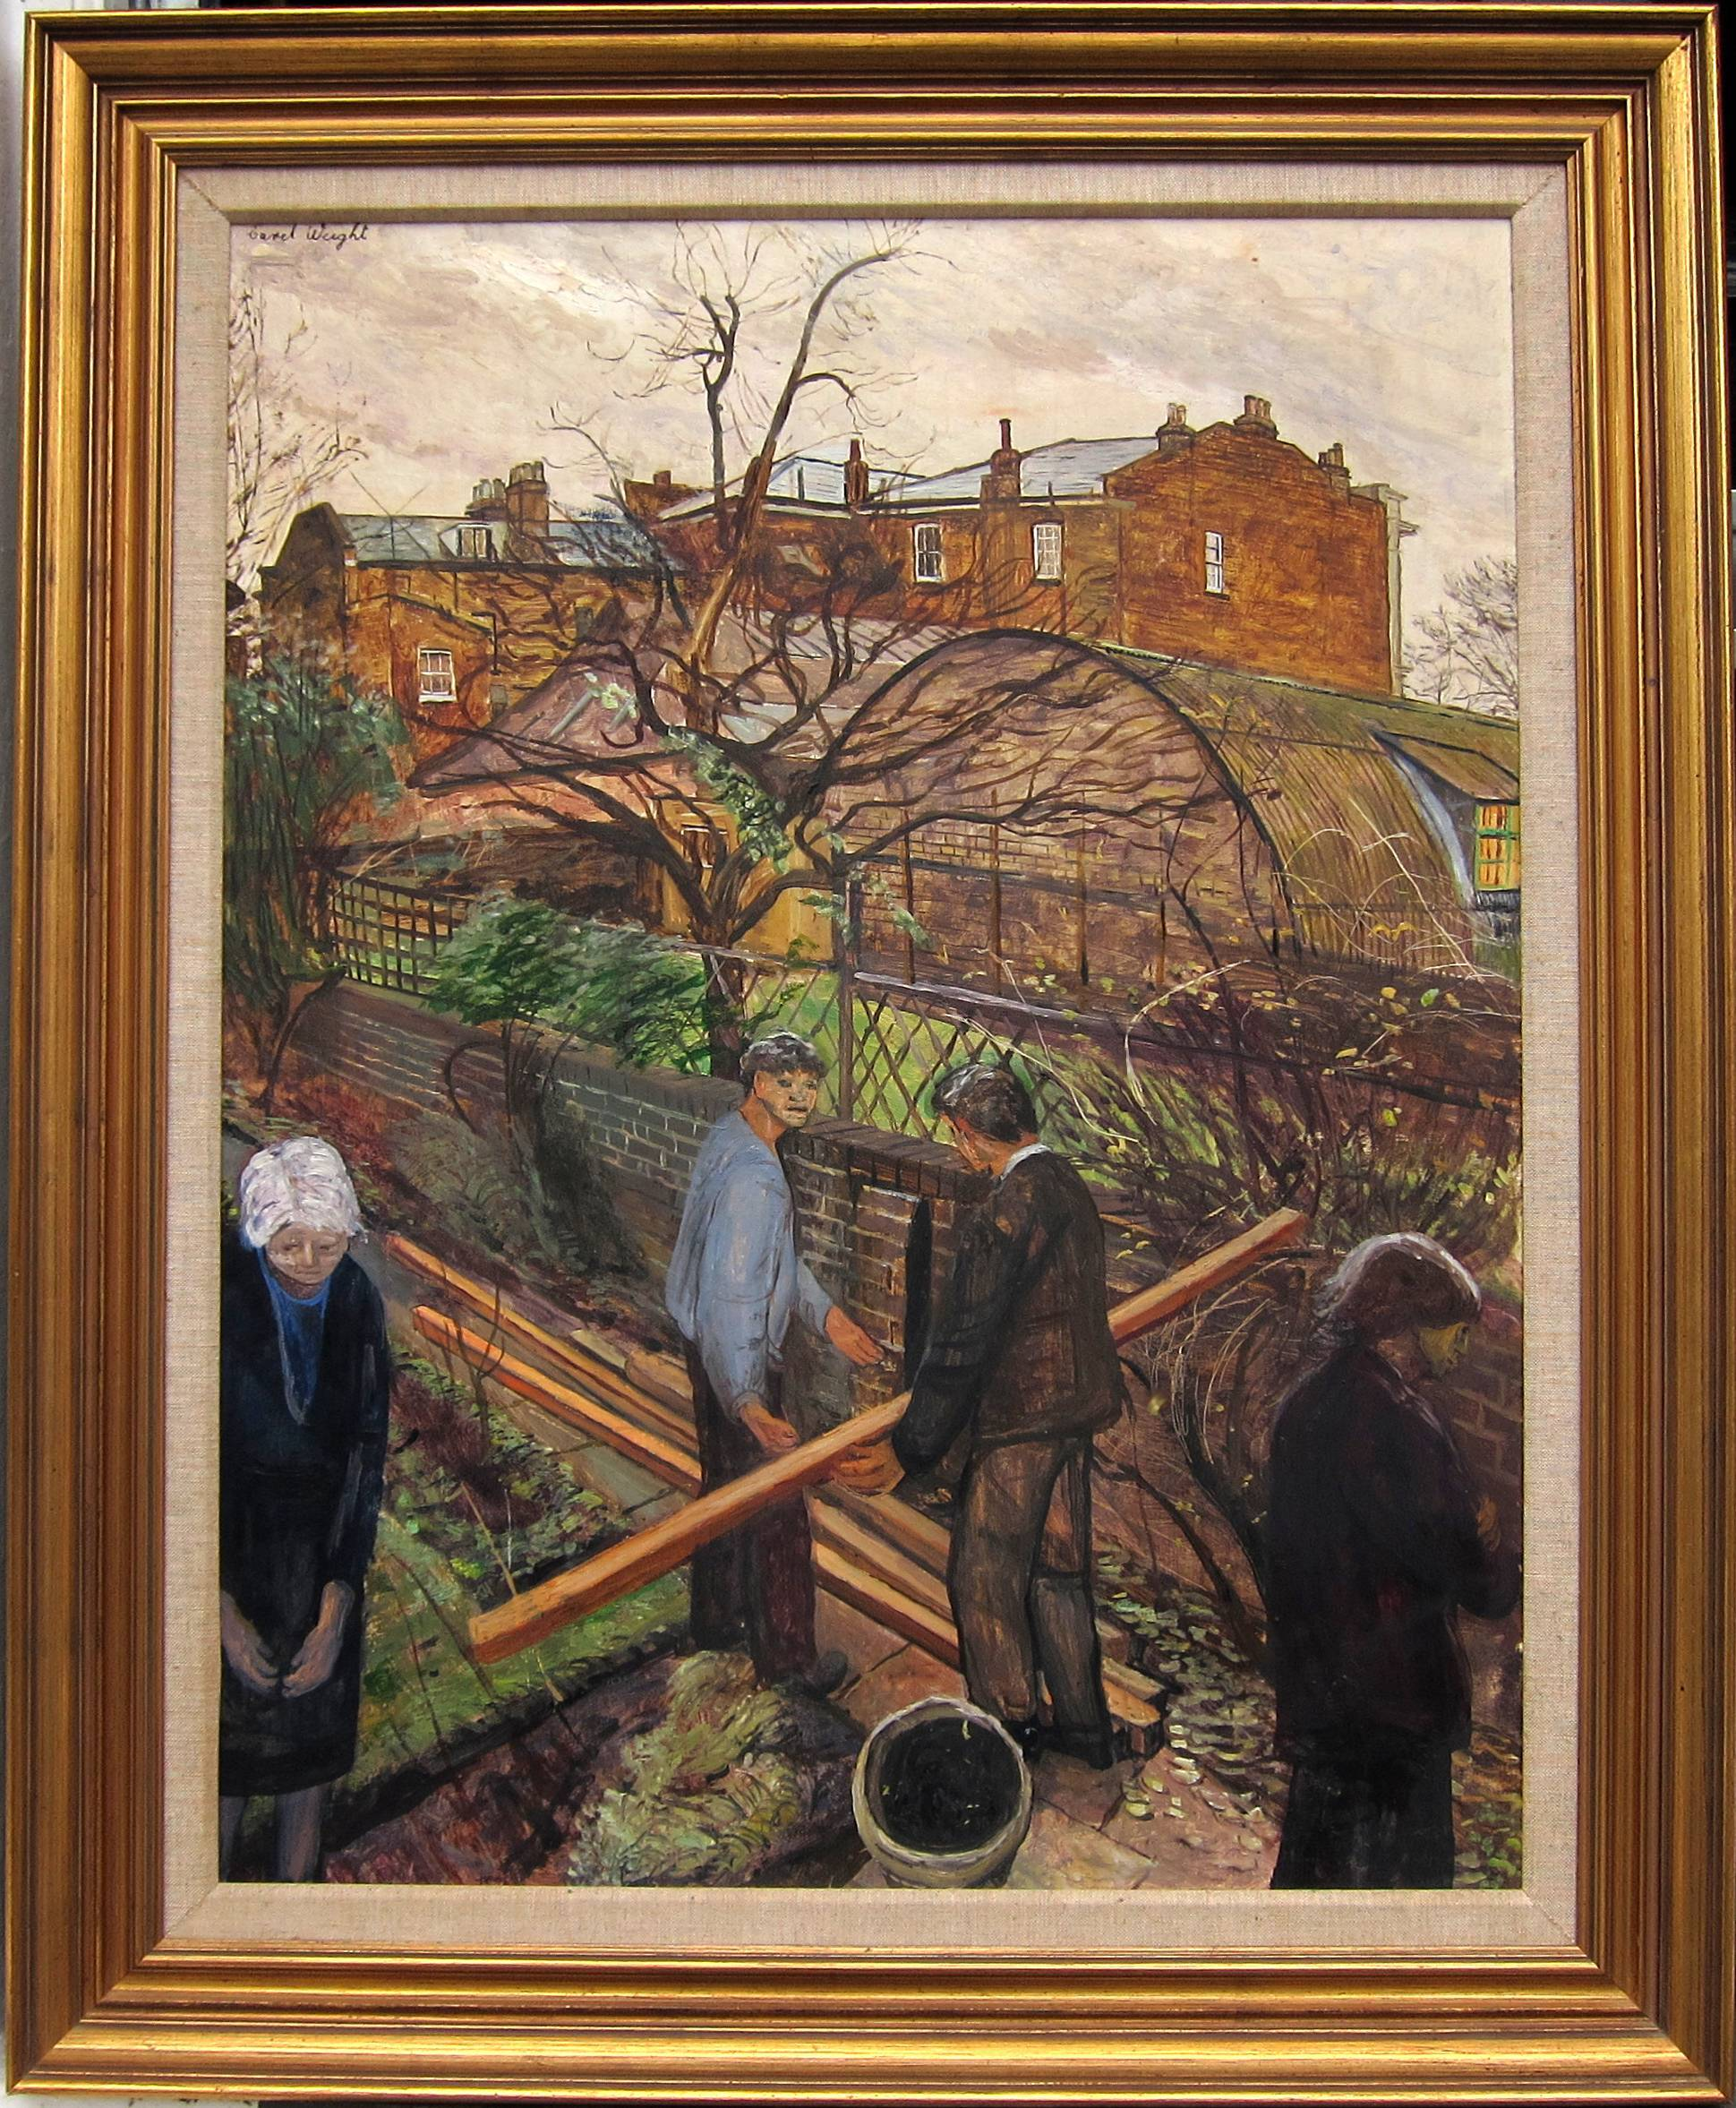 Lot 39 - CAREL WEIGHT, R.A. [1907-97]. The Builders [a view from the artist's bedroom window - 33 Spencer